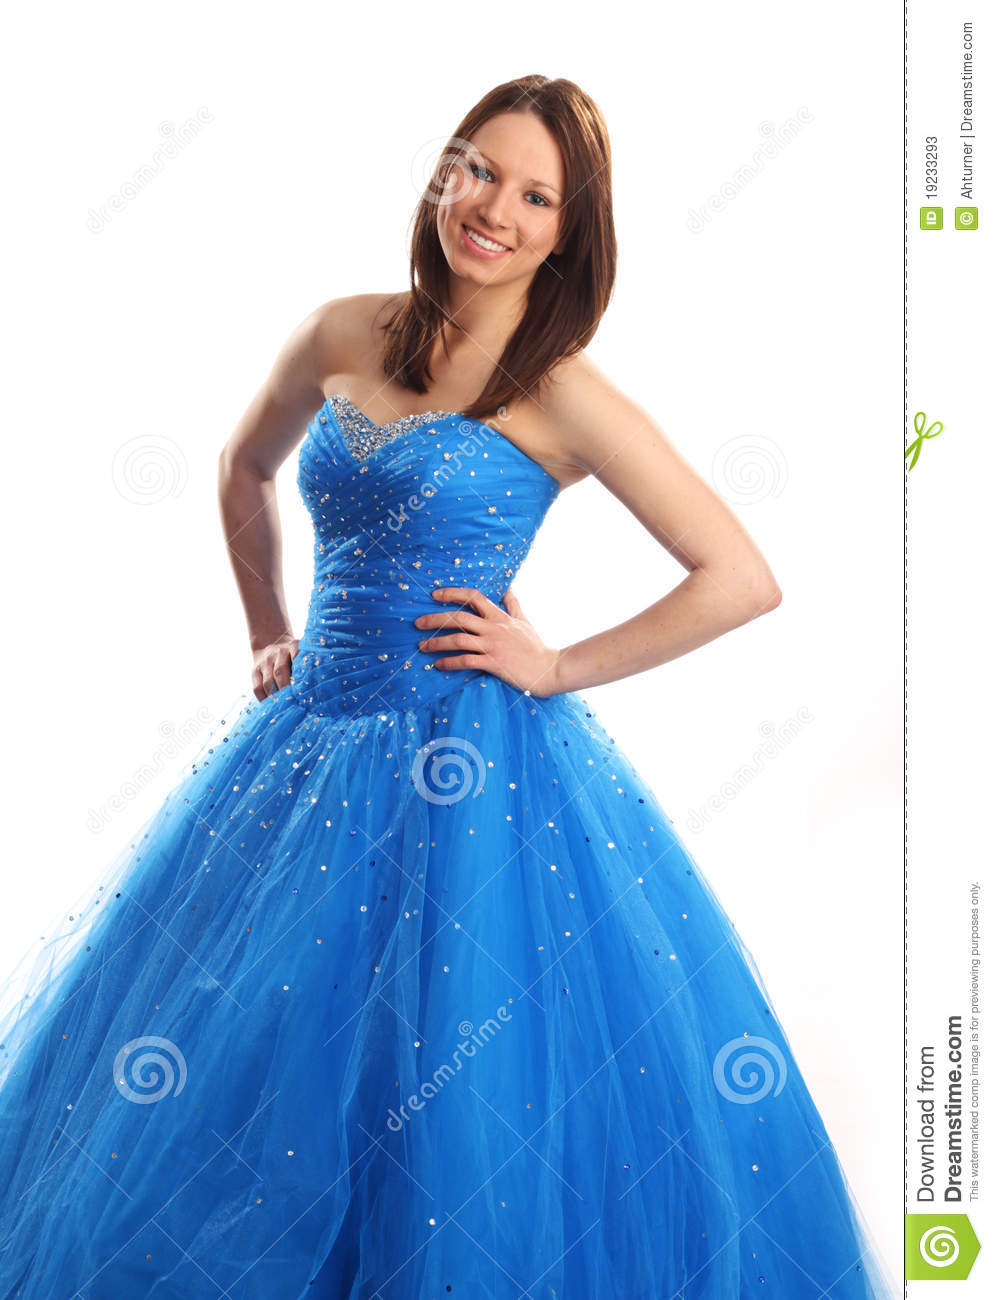 Prom Or Bridesmaid Dress Stock Image Image Of Beauty 19233293